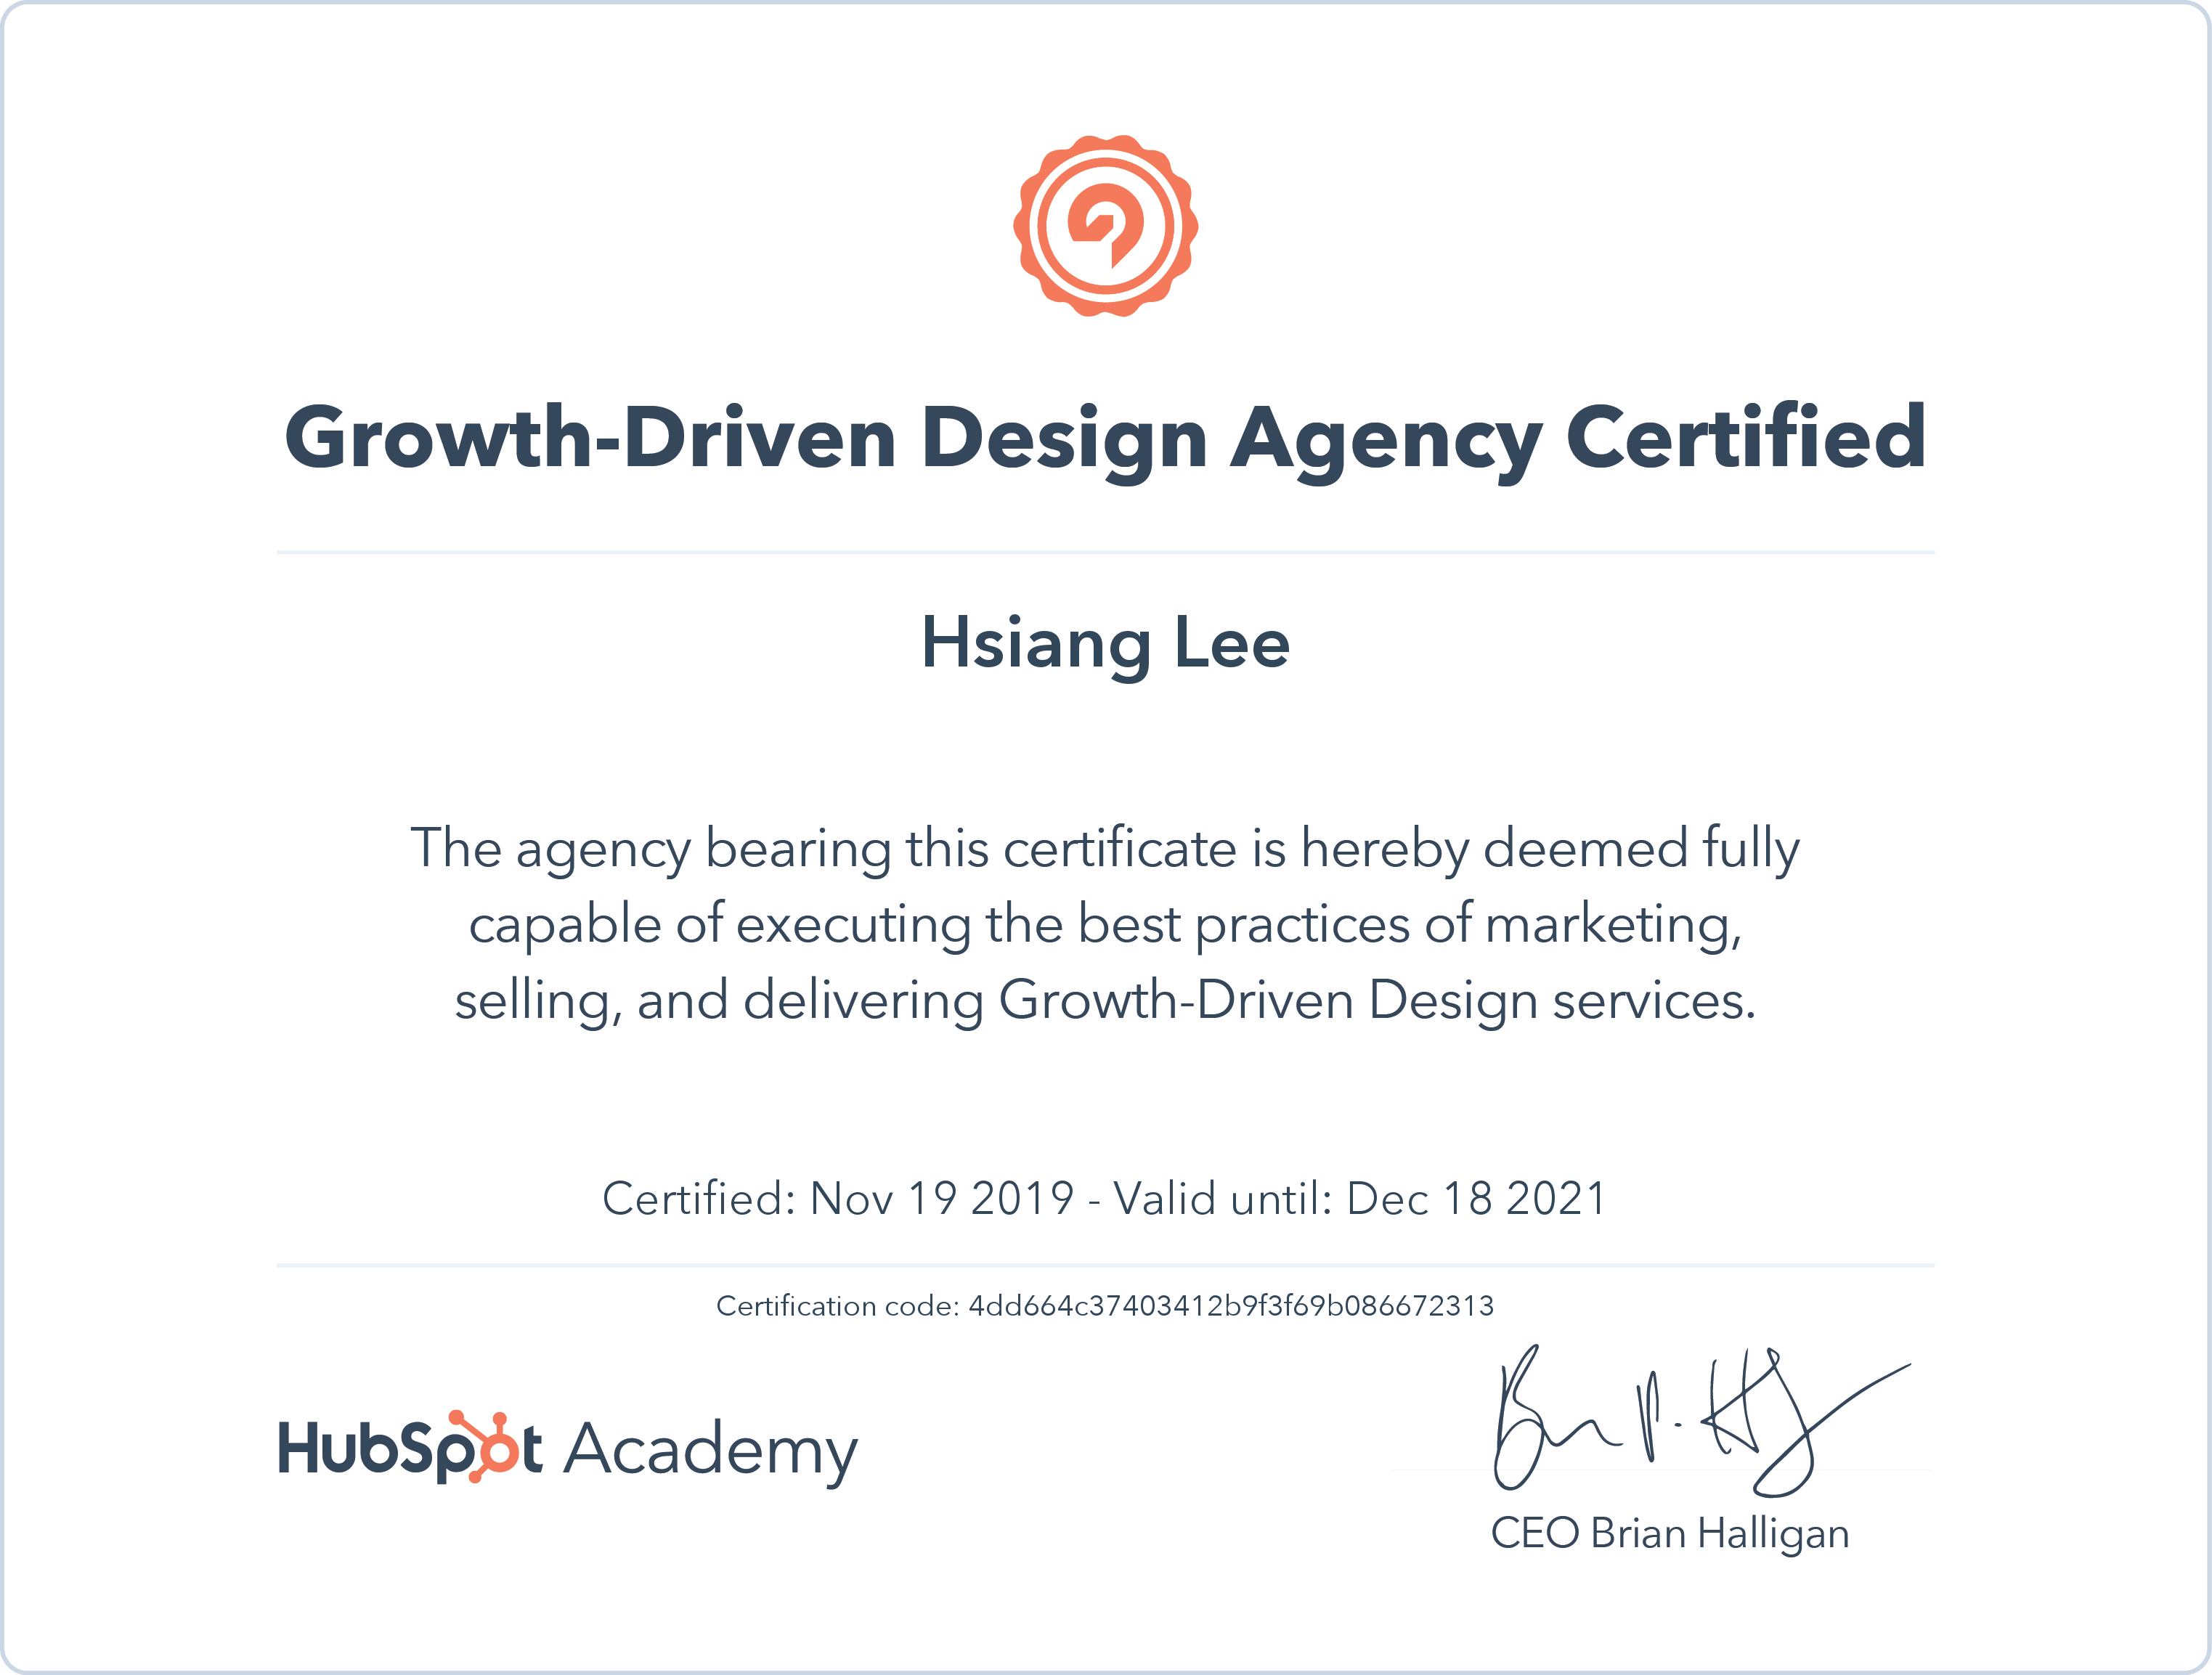 growth-driven-design-agency-certified_hsiang